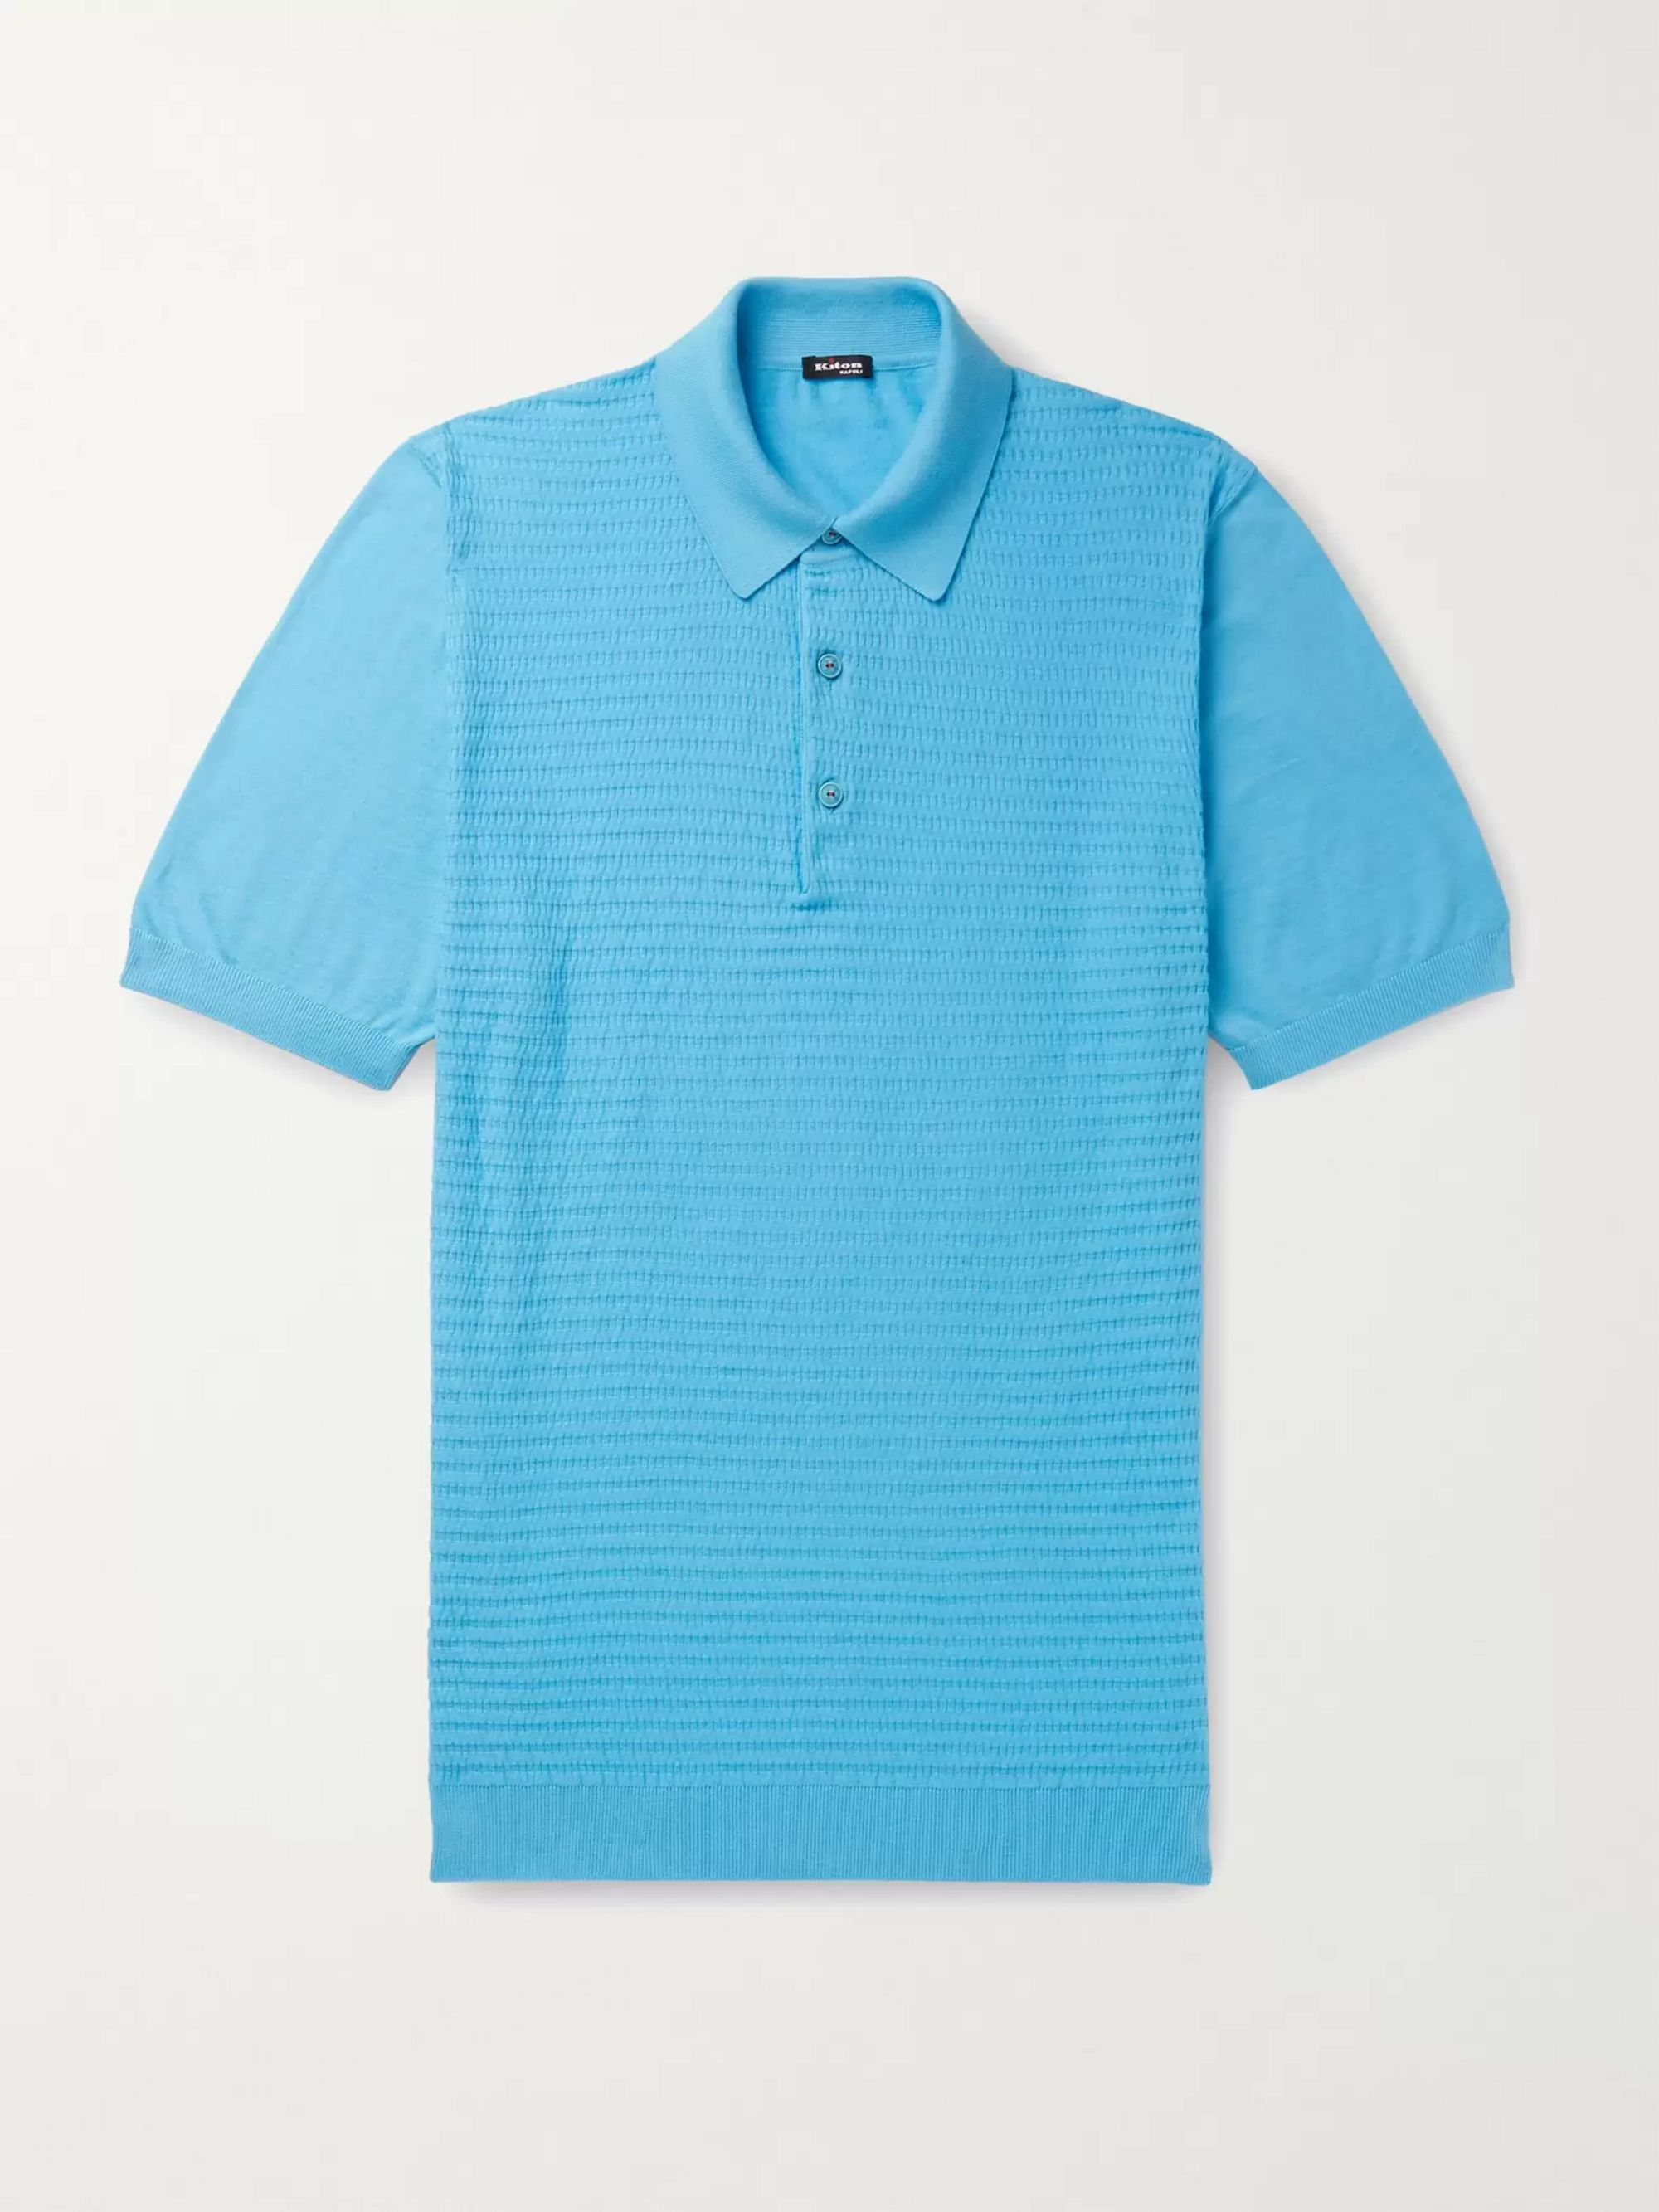 KITON Slim-Fit Waffle-Knit Cotton Polo Shirt